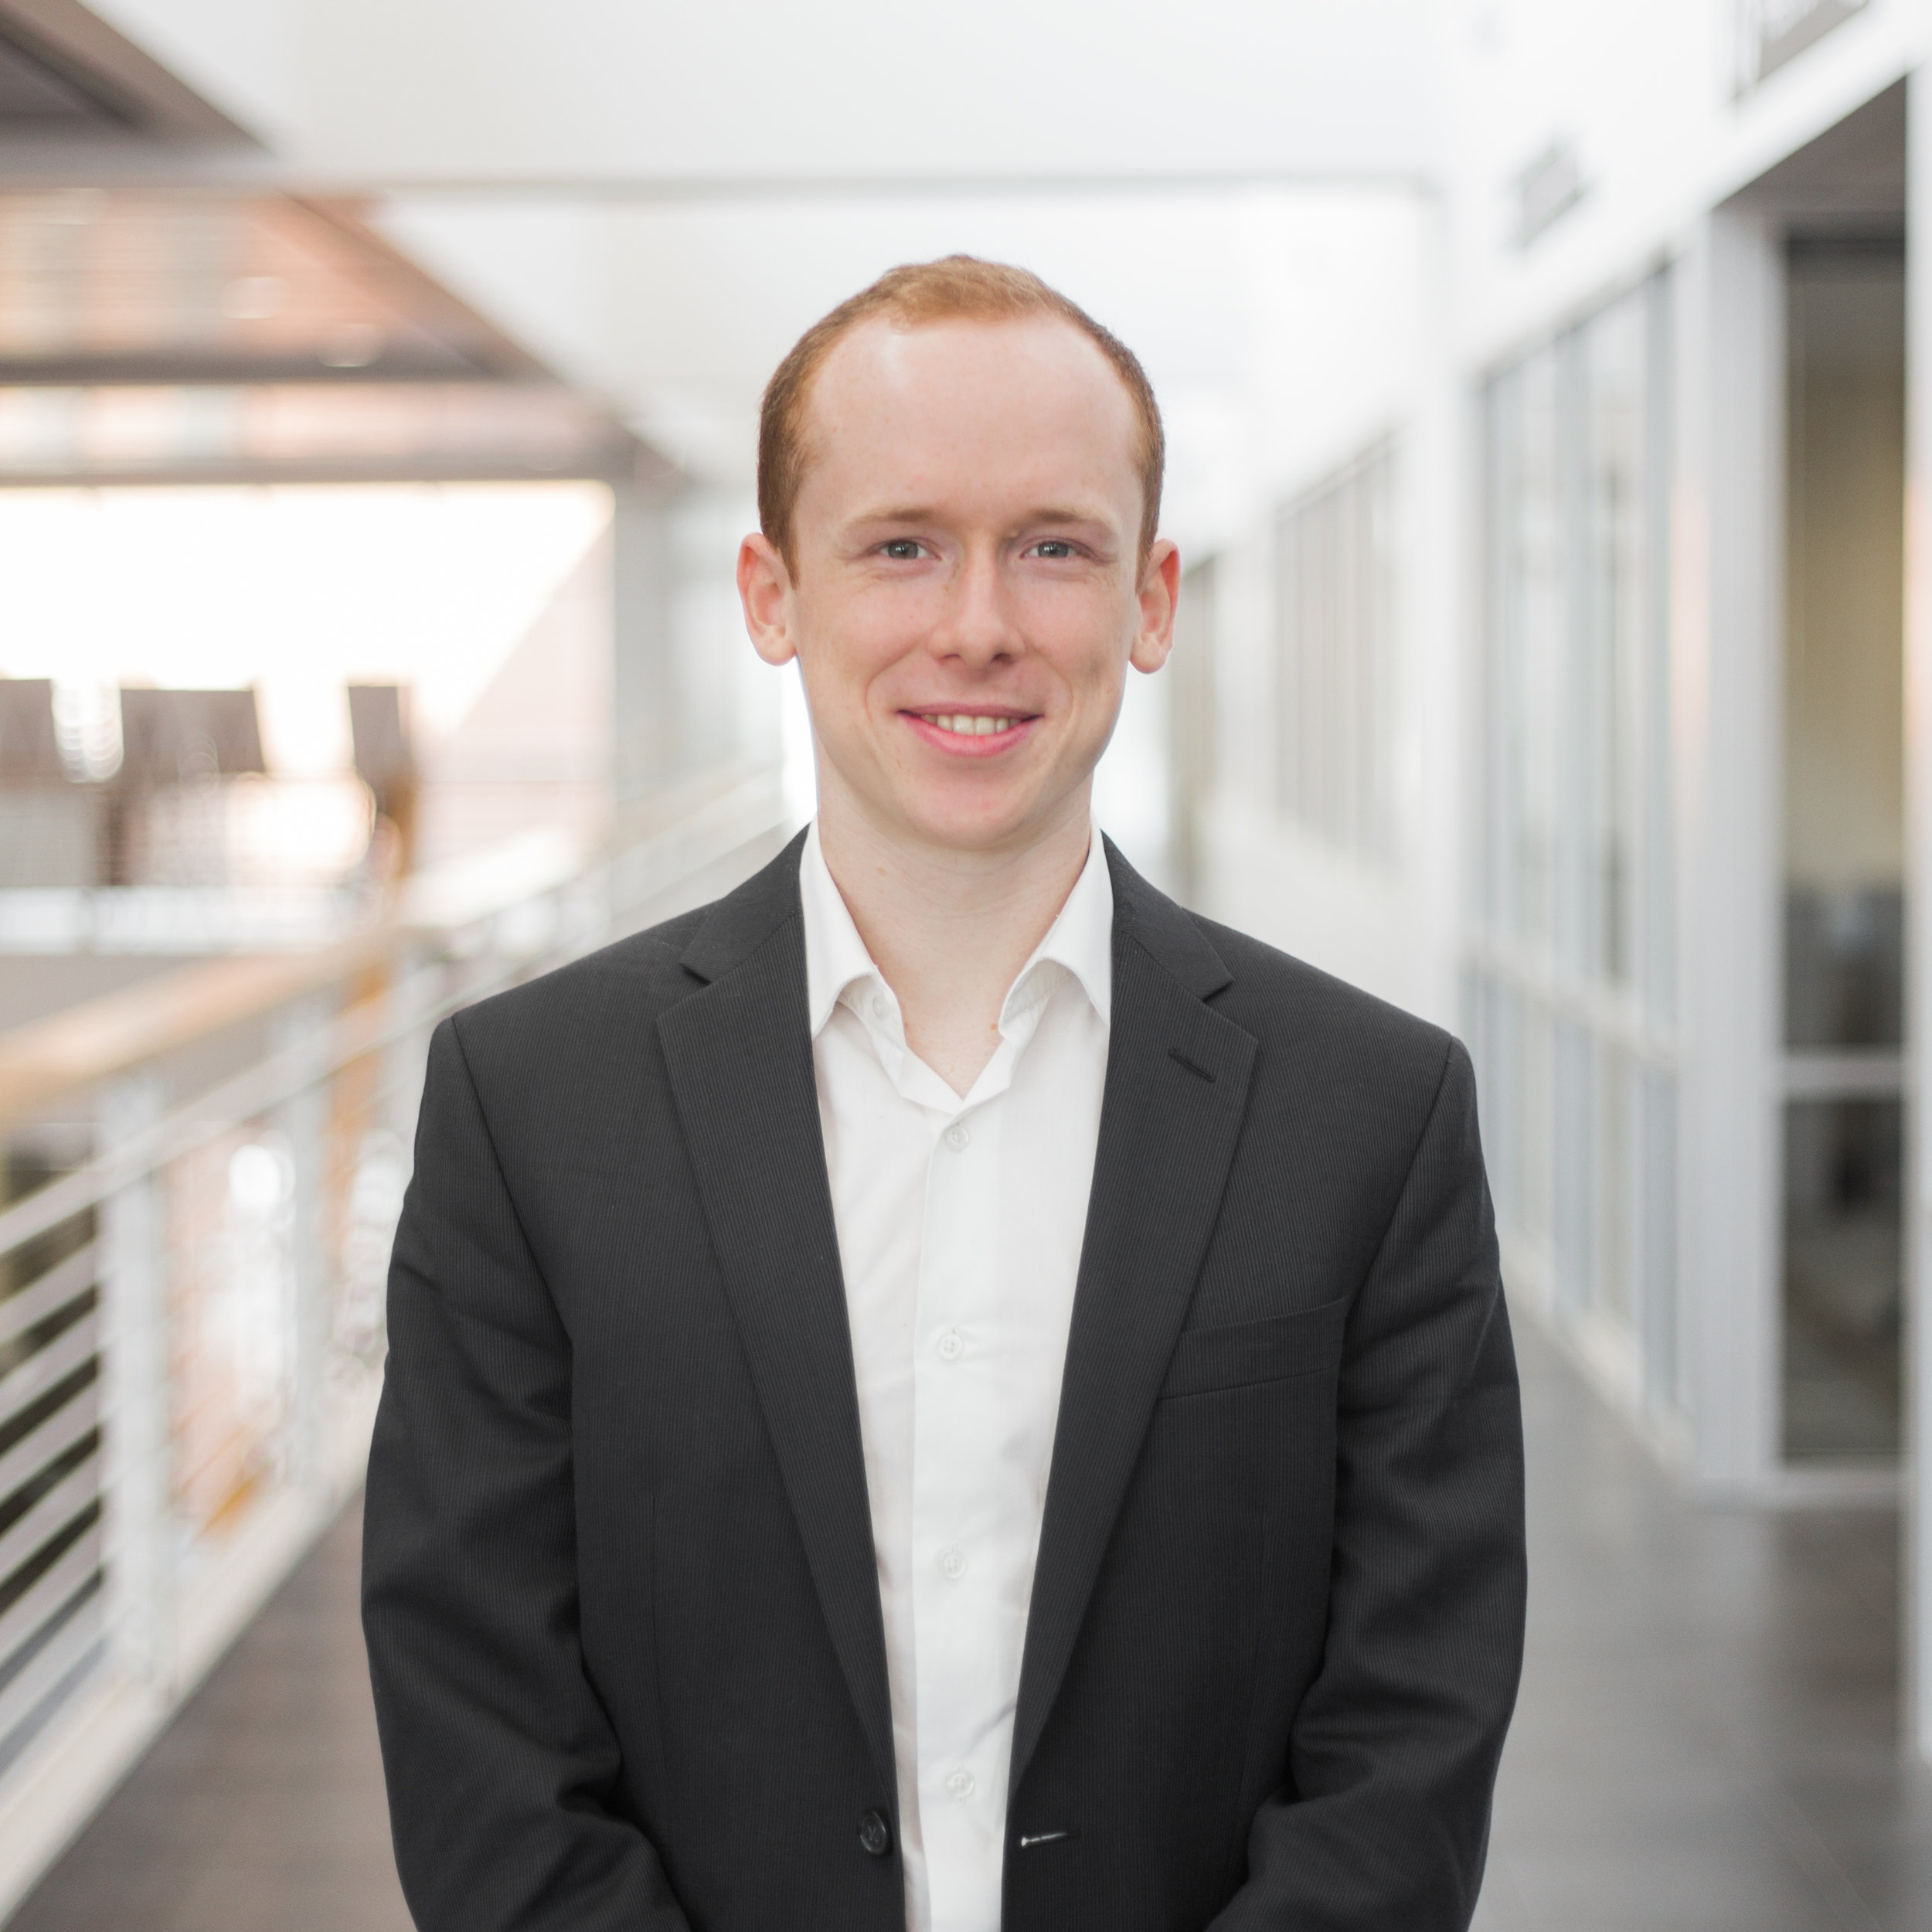 Ethan Schulz - AnalystBS '19, Computer Science